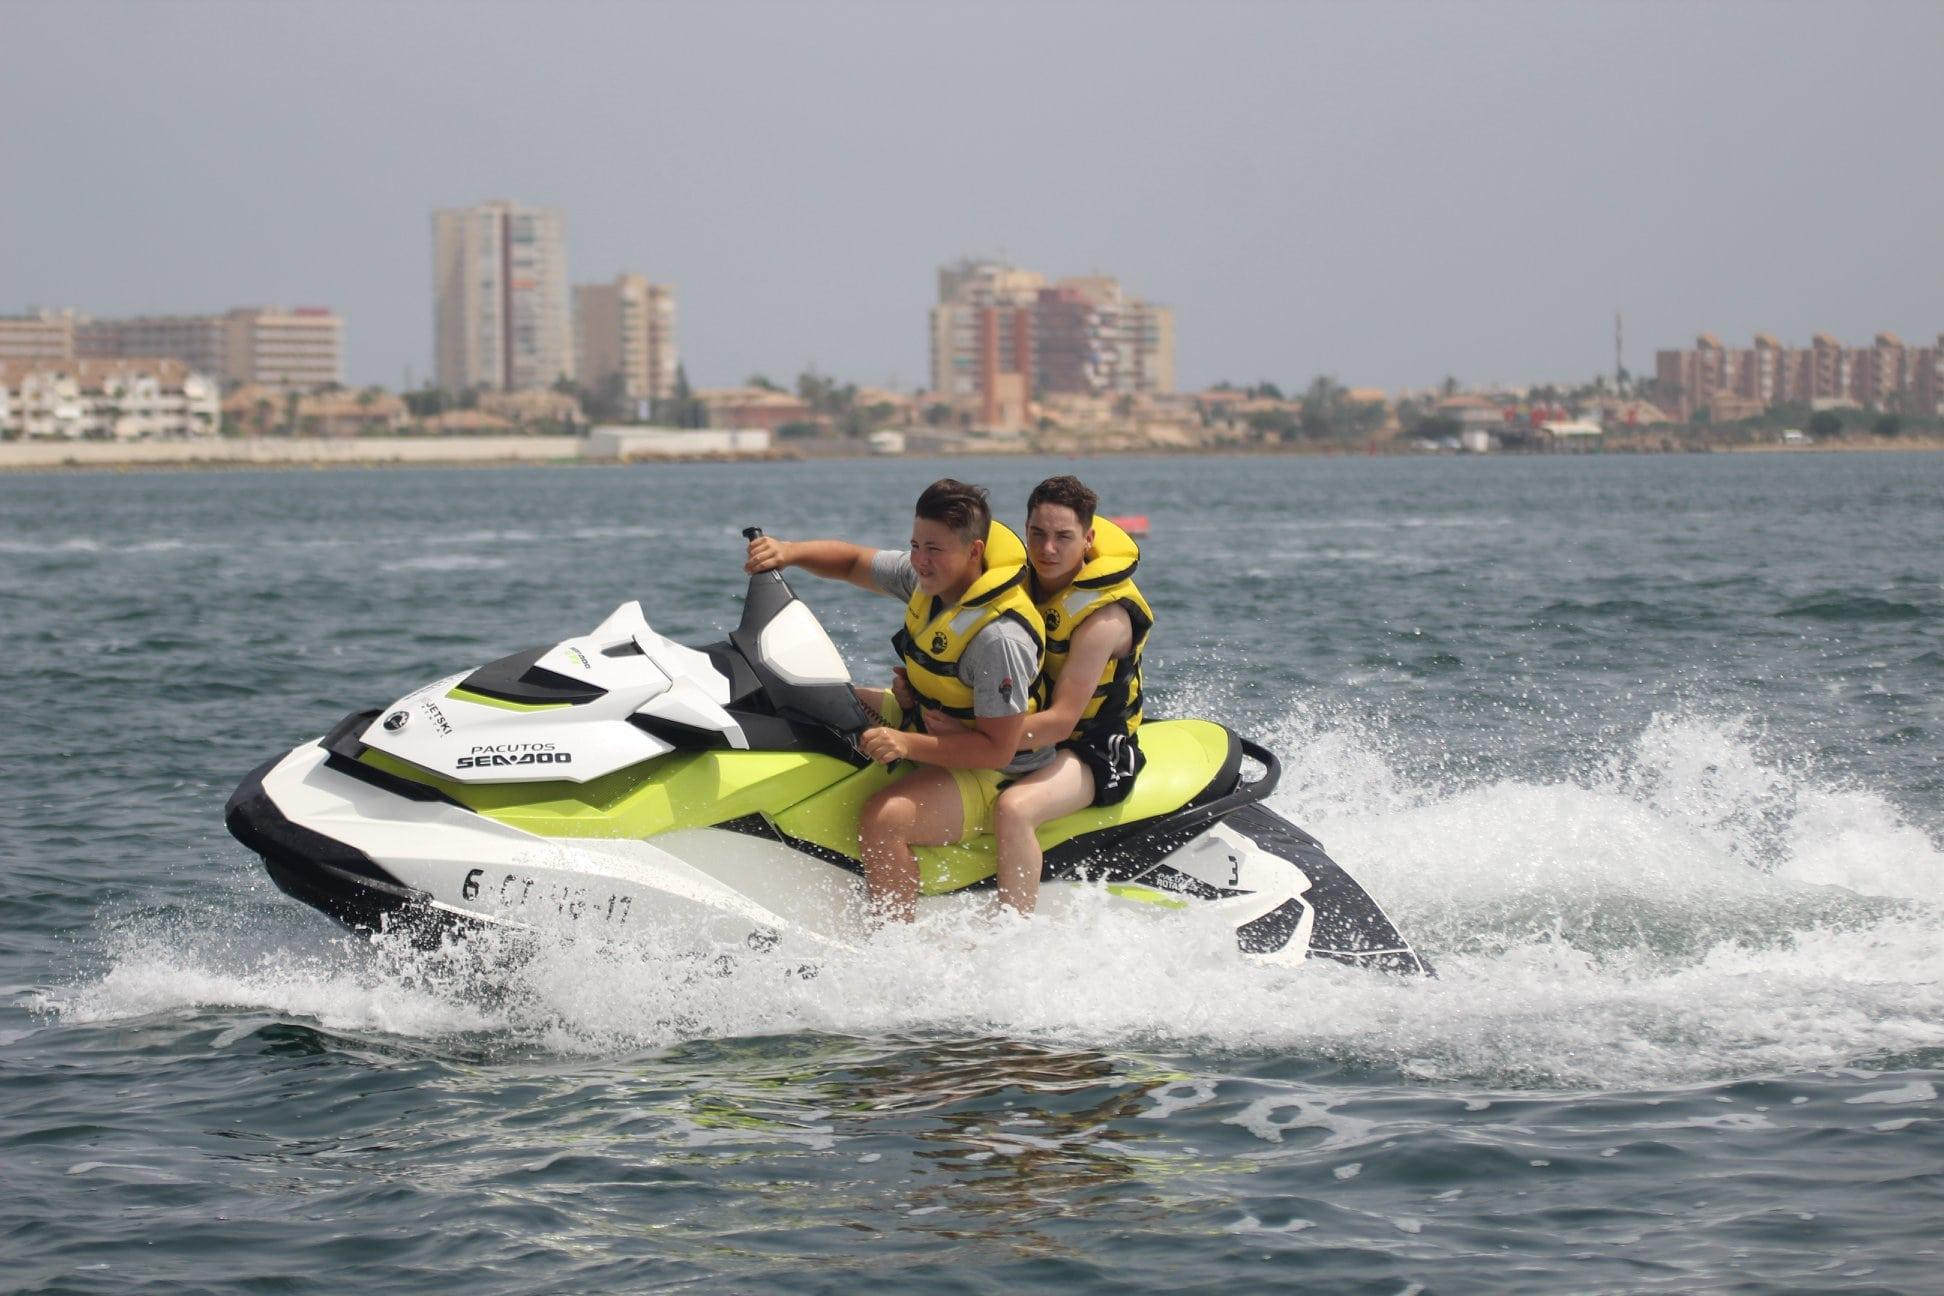 Jetskiën in La Manga del Mar Menor - Mar Menor